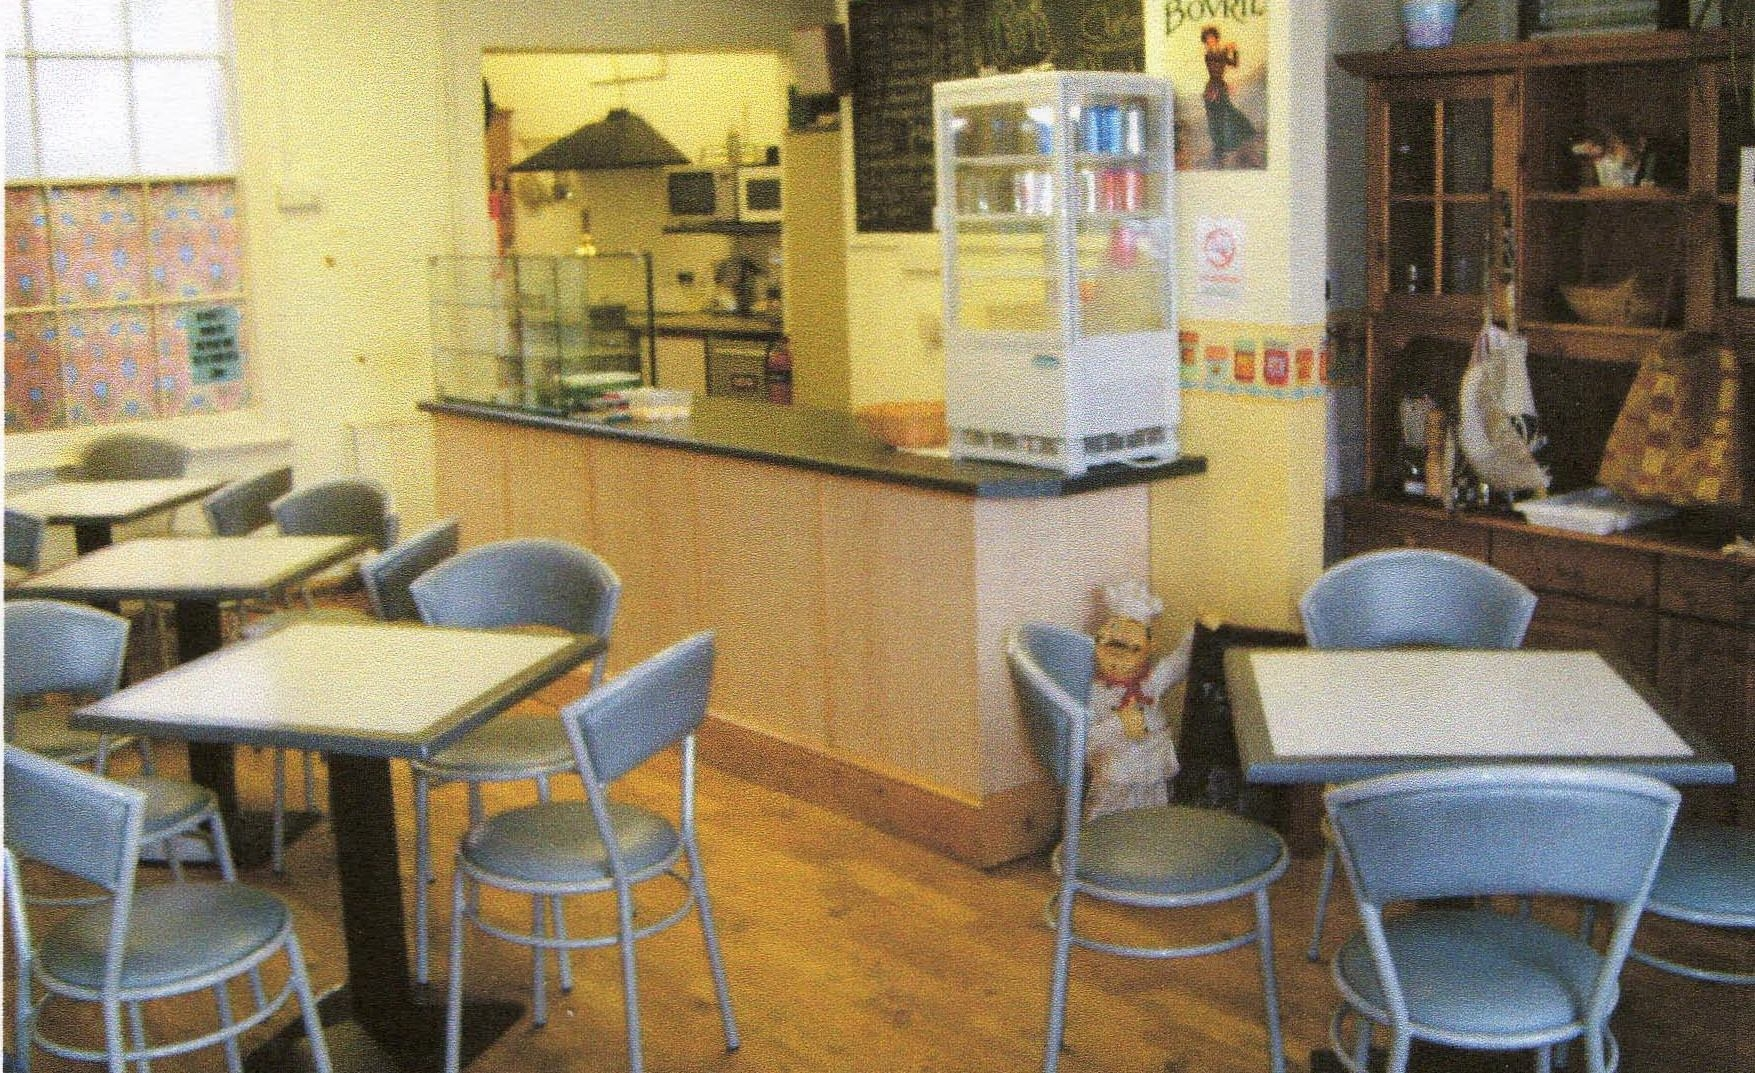 Community cafe, a social enterprise